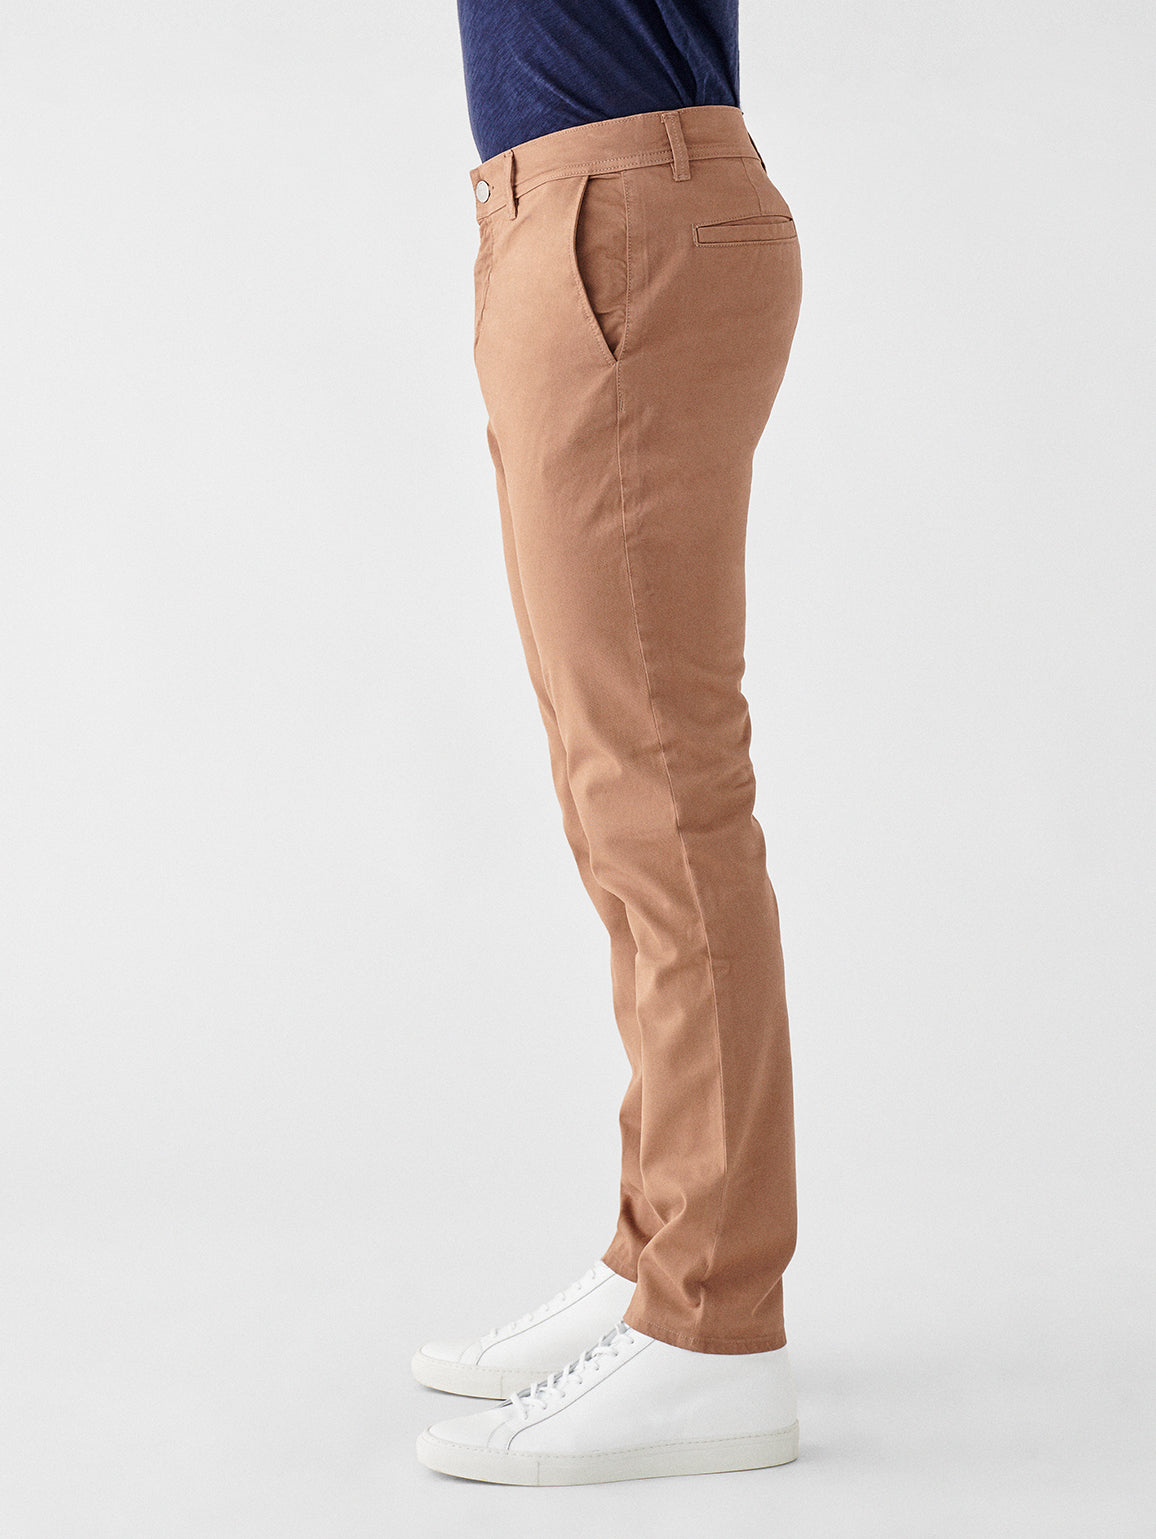 Duke Tailored Chino | Dark Tan